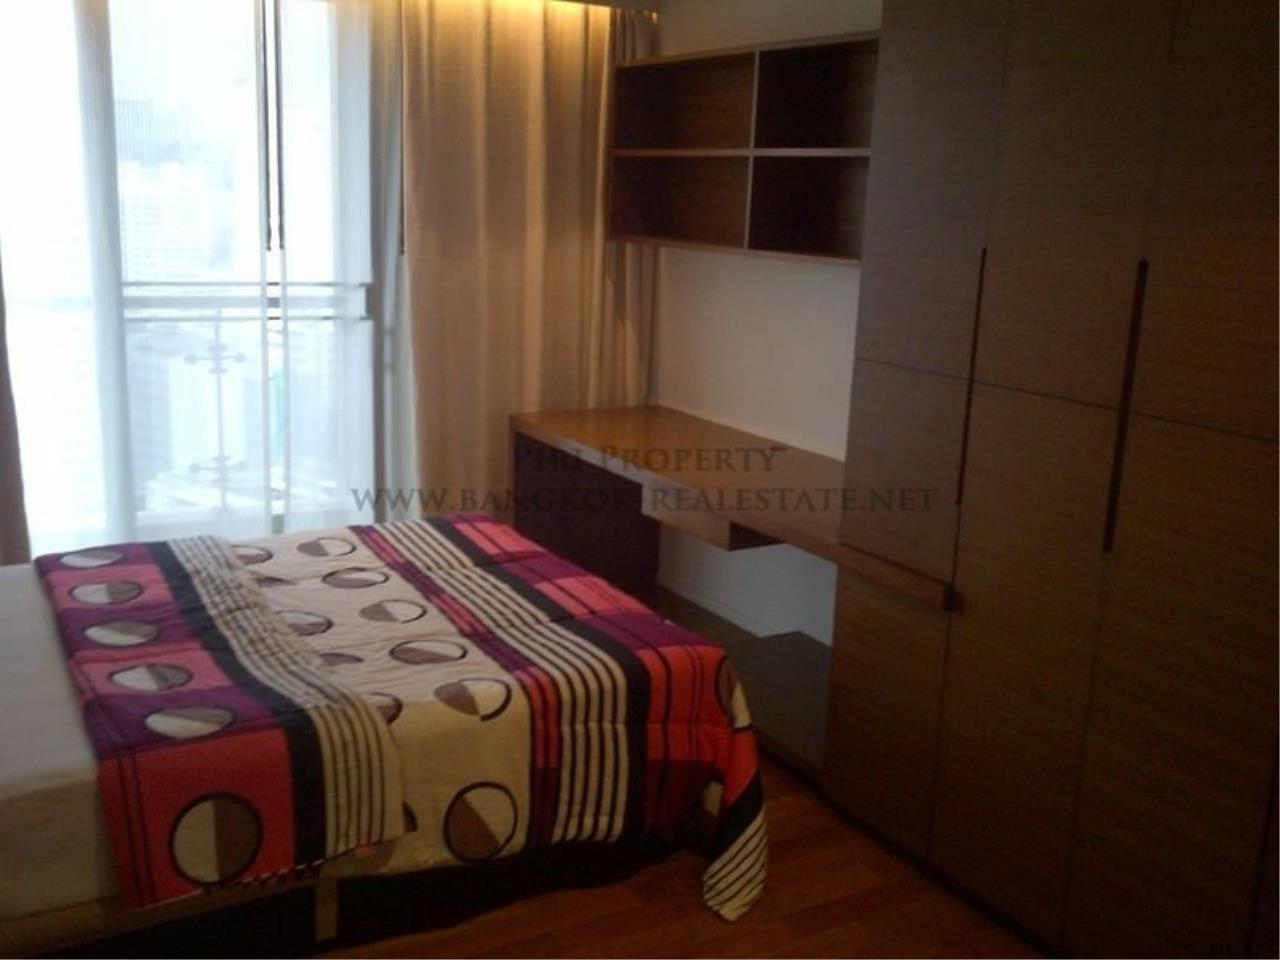 Piri Property Agency's 2 Bedroom Condo in The Lakes building for Rent - High Floor 14